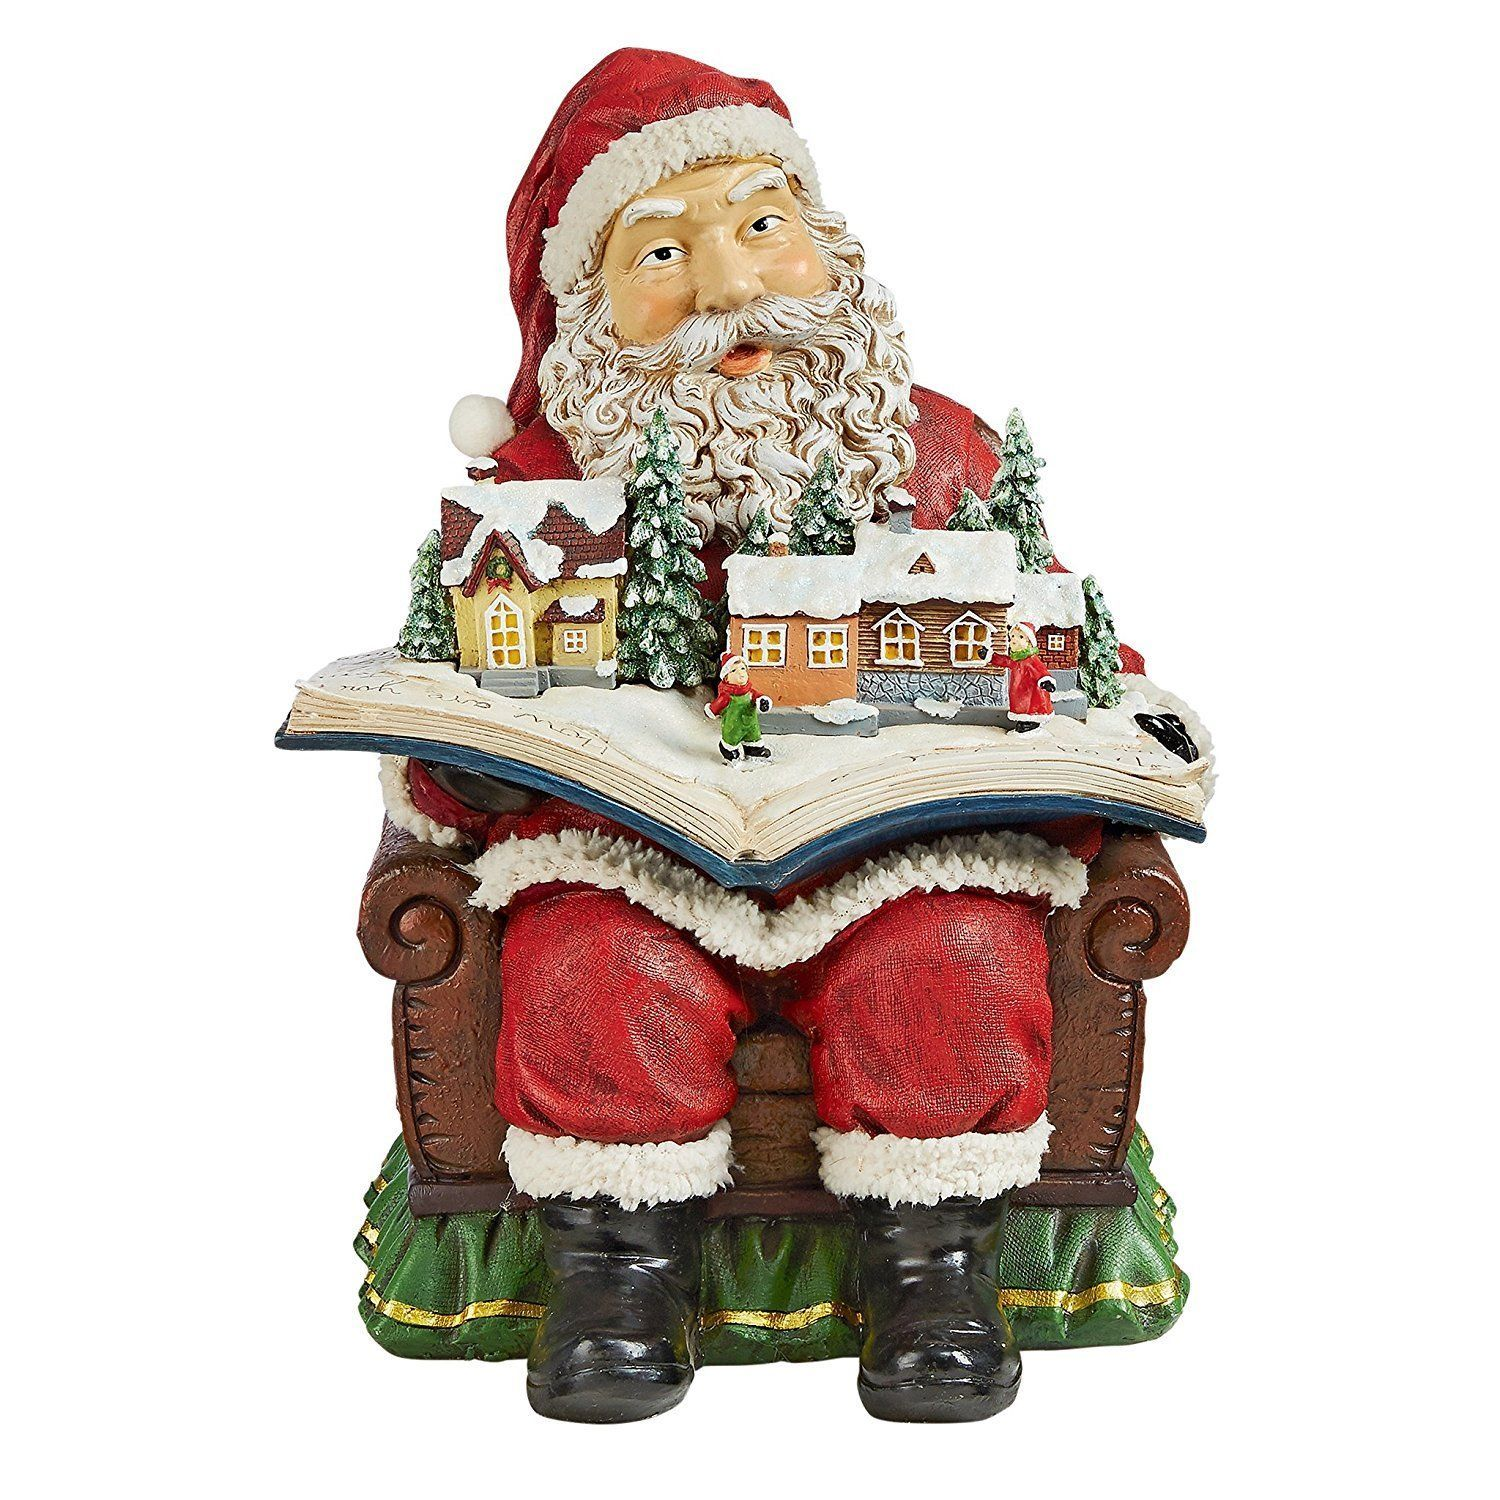 Santa Claus Decorations Uk: Santa Claus Clause Sculpture Father Christmas Kris Kringle